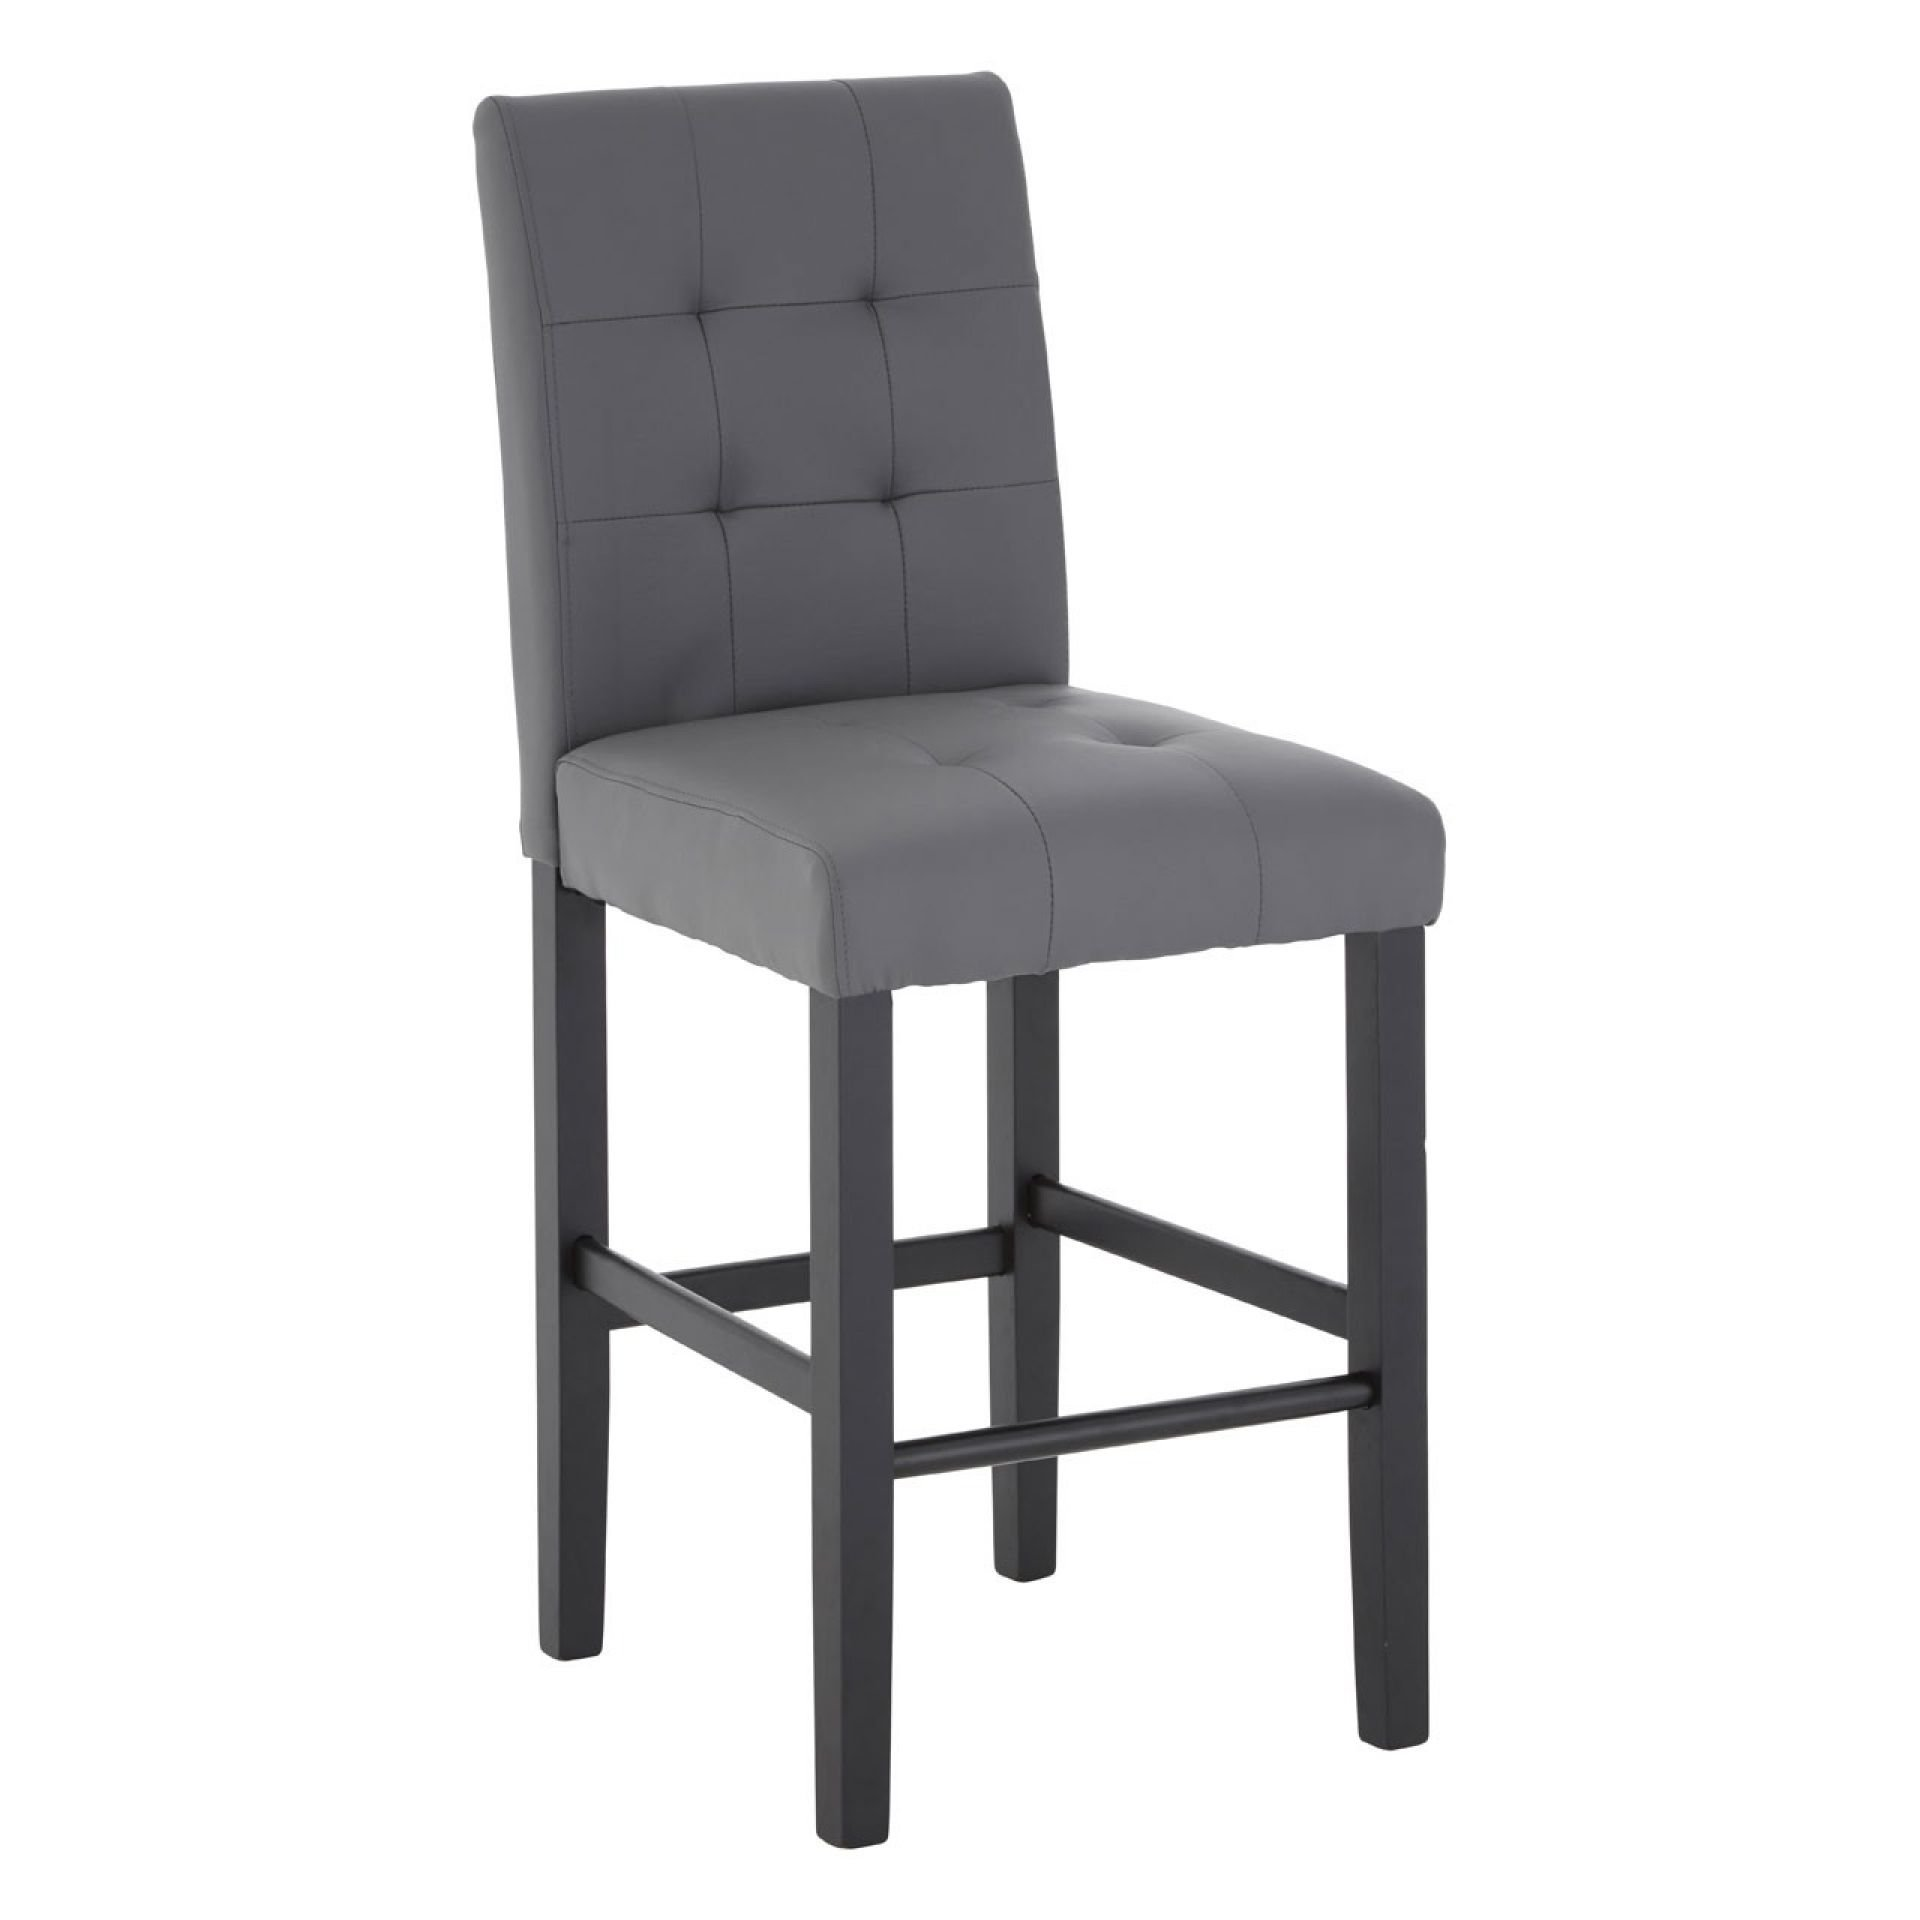 Regency Park Grey Faux Leather Buttoned Bar Chair